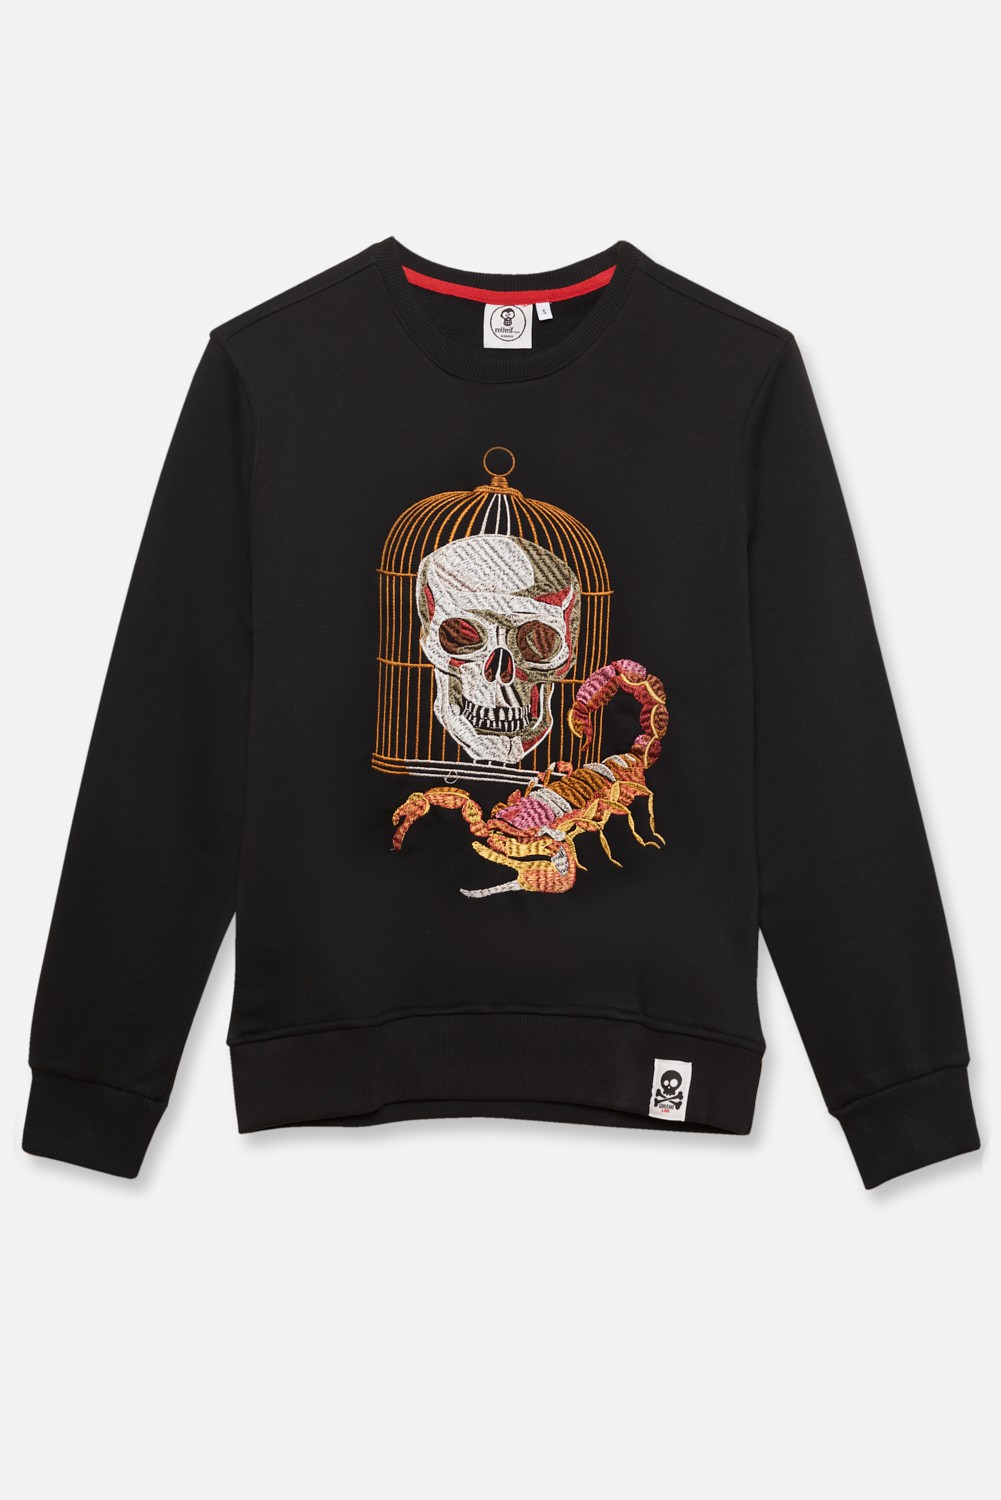 ADULT´S EMBROIDERED JERSEY UMAMI LINE SKULL AND SCORPION